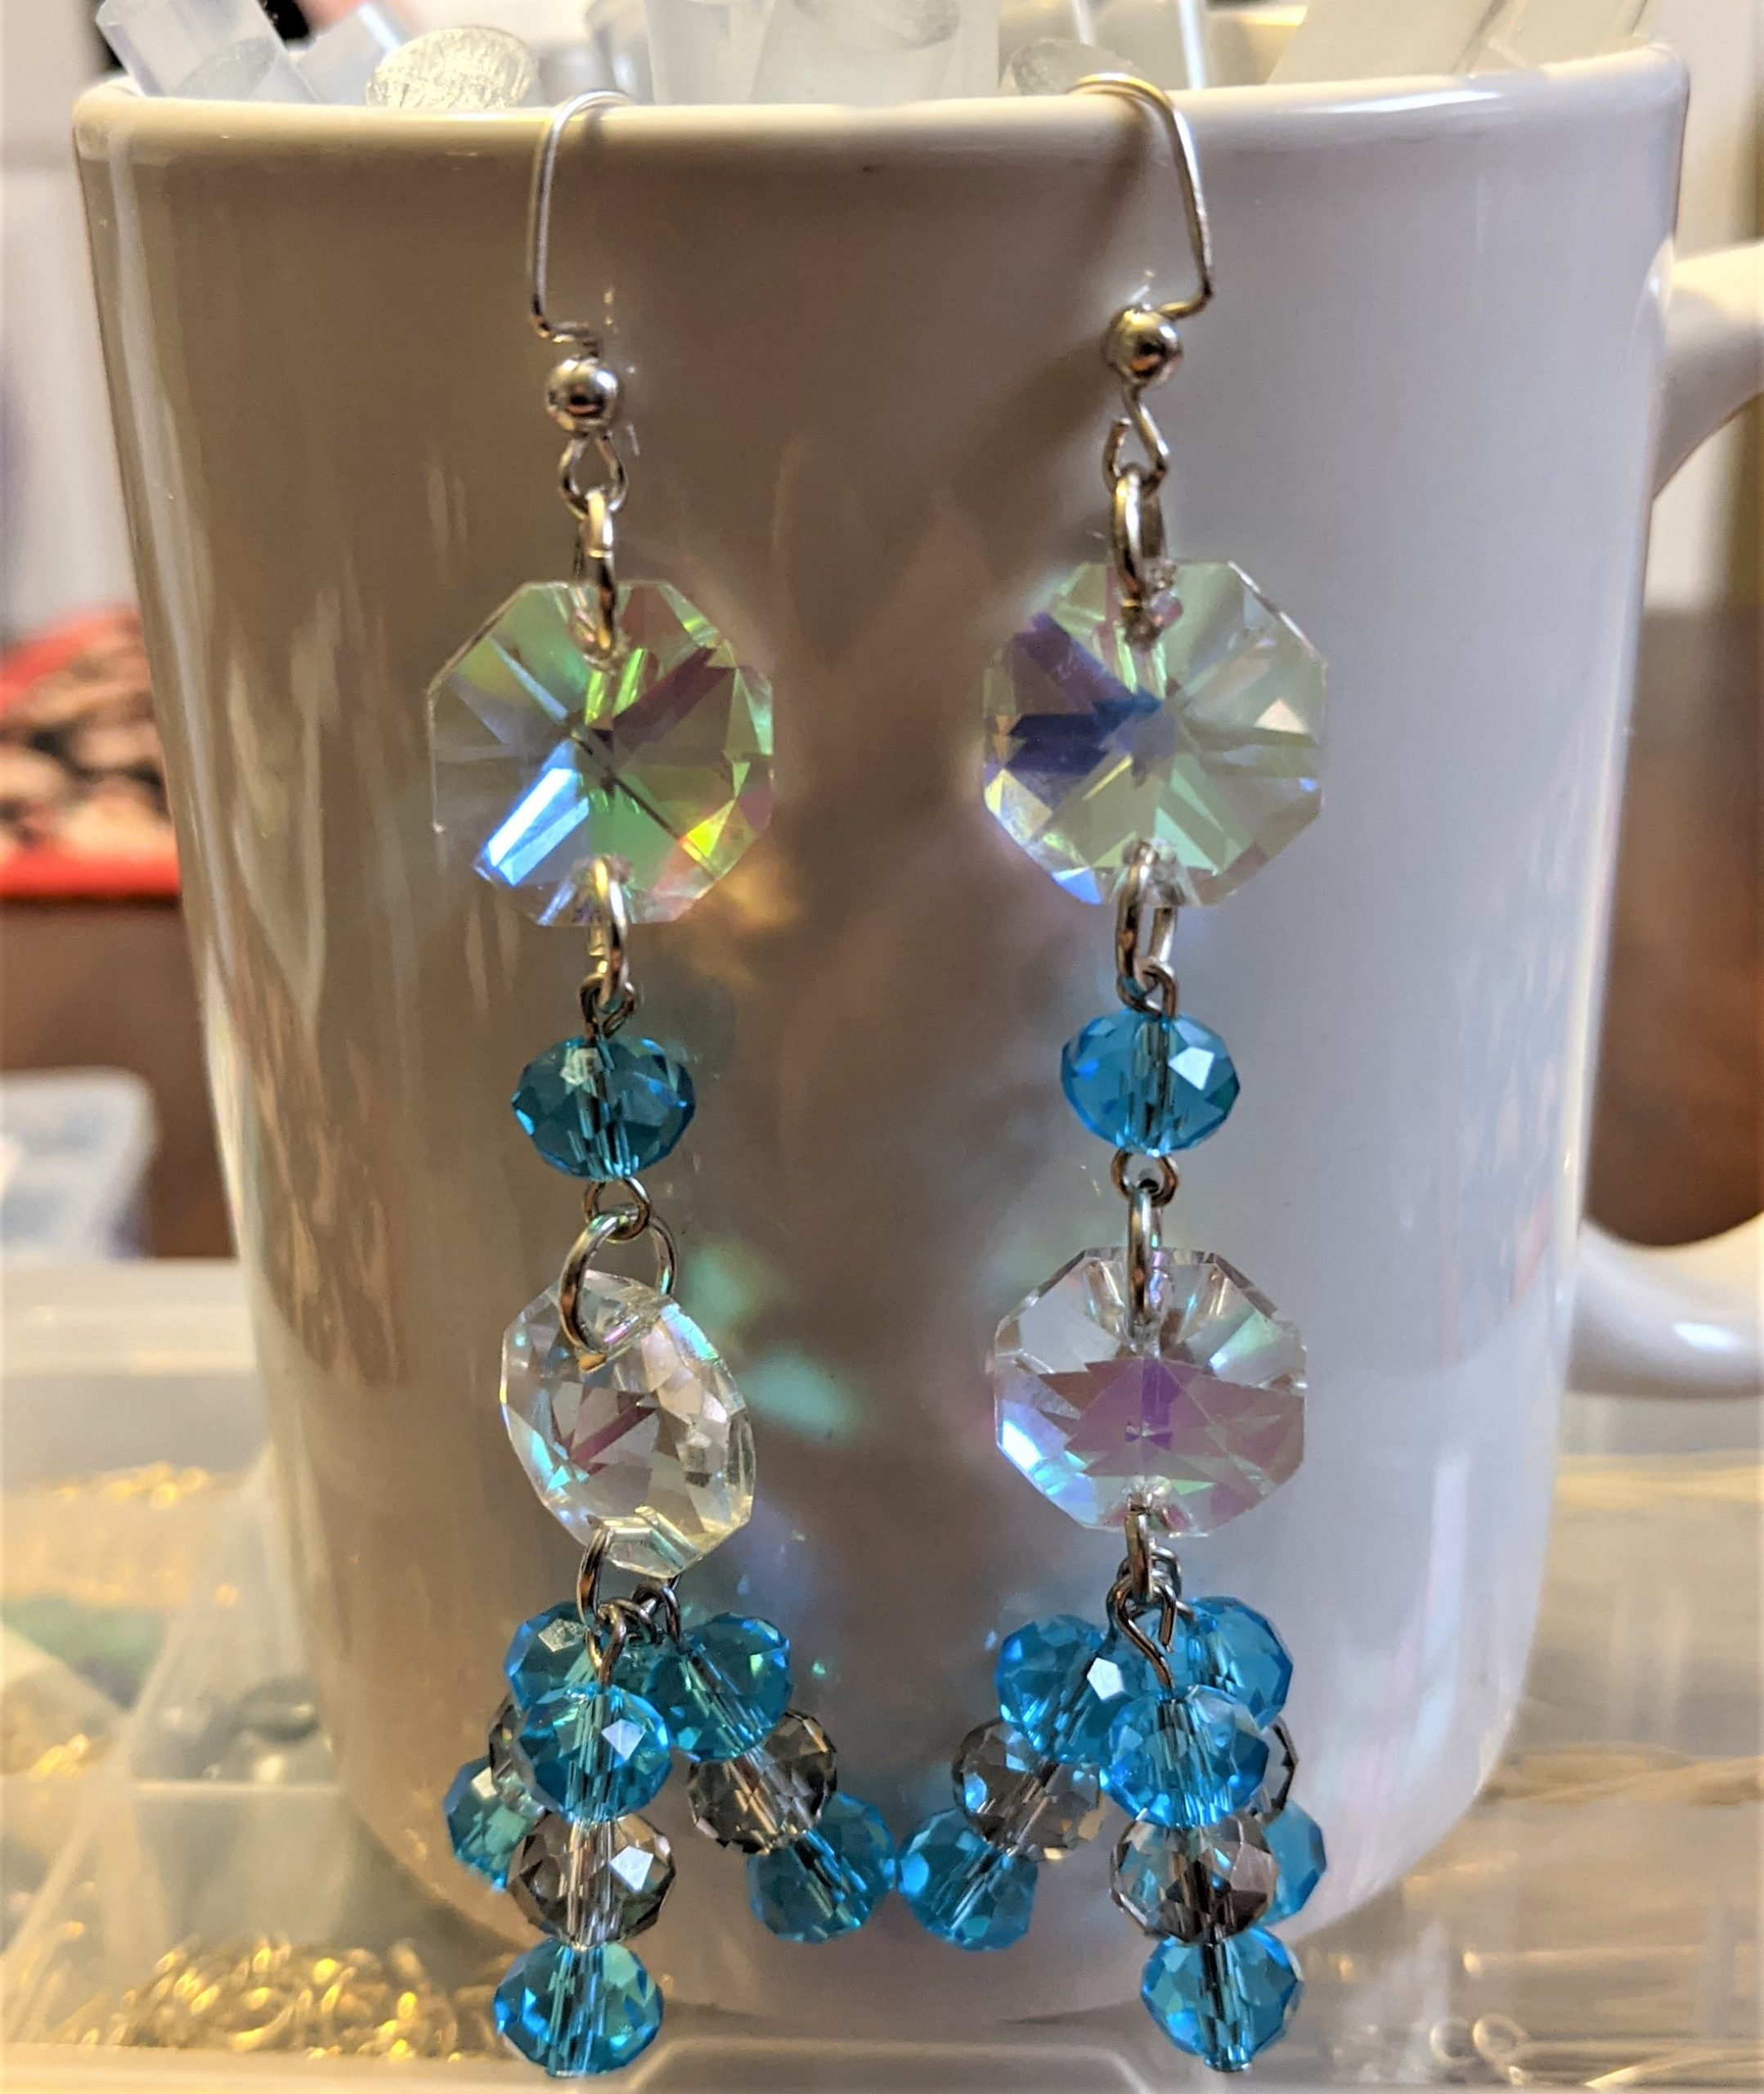 Once you have connected all your pieces, you have a beautiful pair of chandelier earrings ready to wear!!